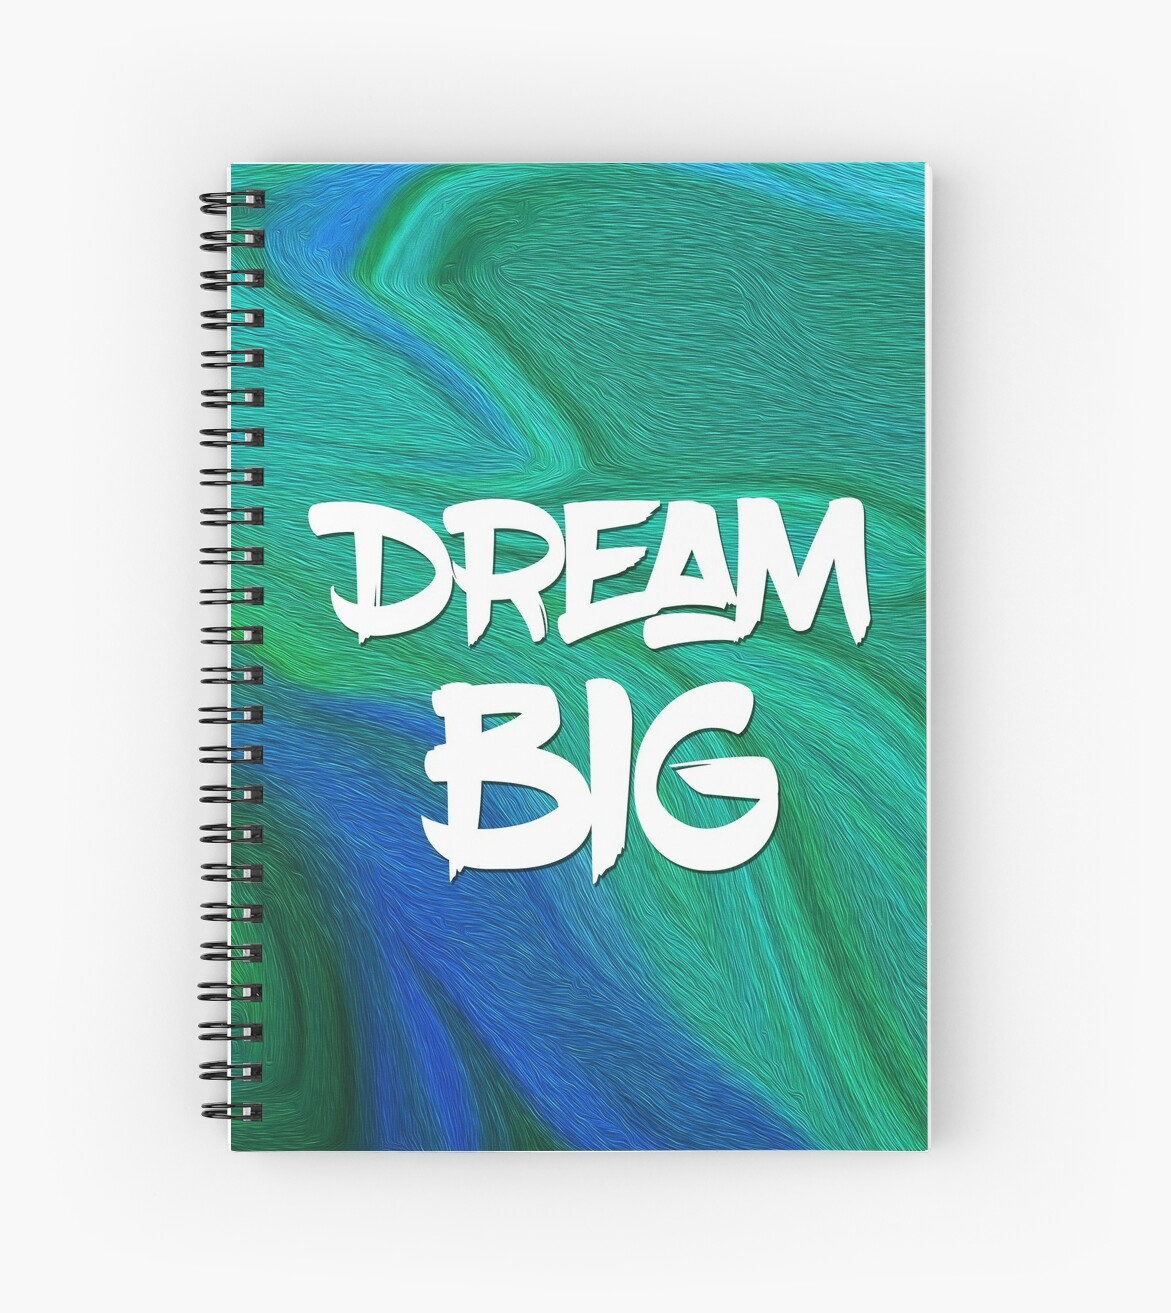 Dream Big by bcolor